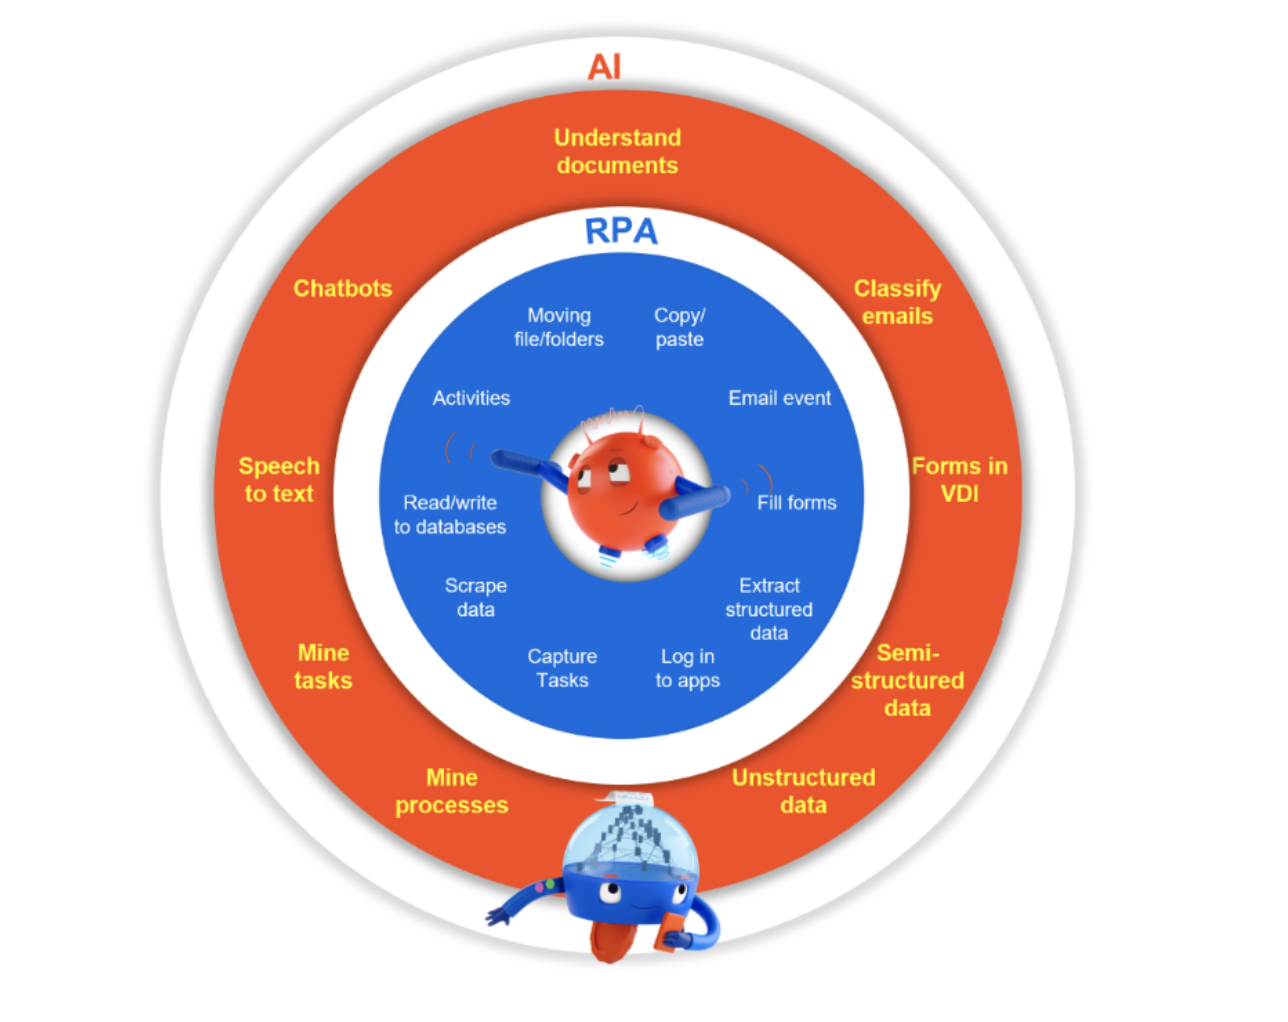 rpa ai differences